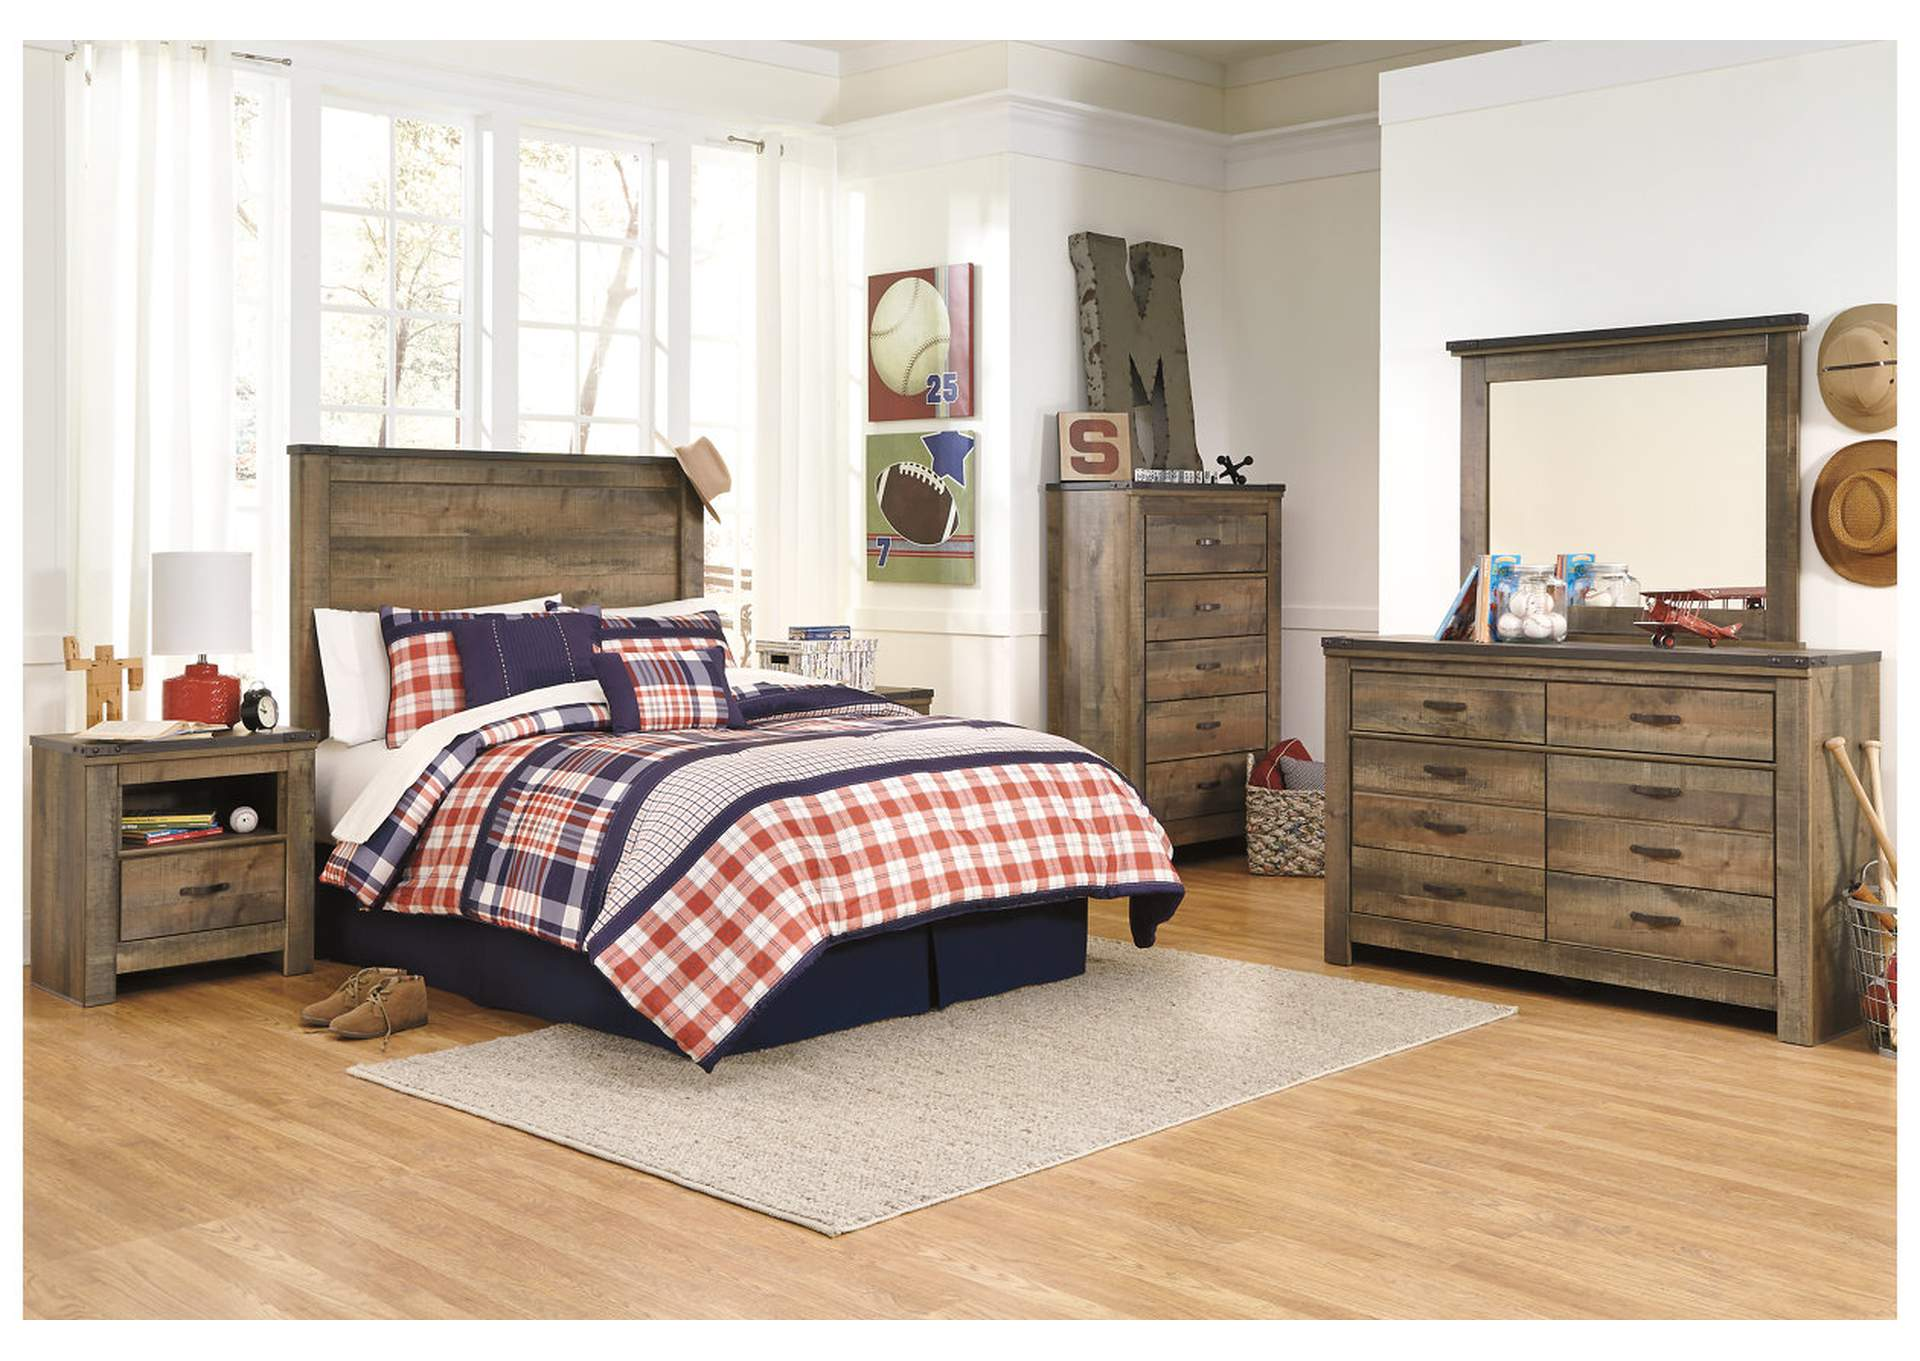 Trinell Brown Twin Panel Headboard w/Dresser, Mirror, Drawer Chest & Nightstand,Signature Design by Ashley